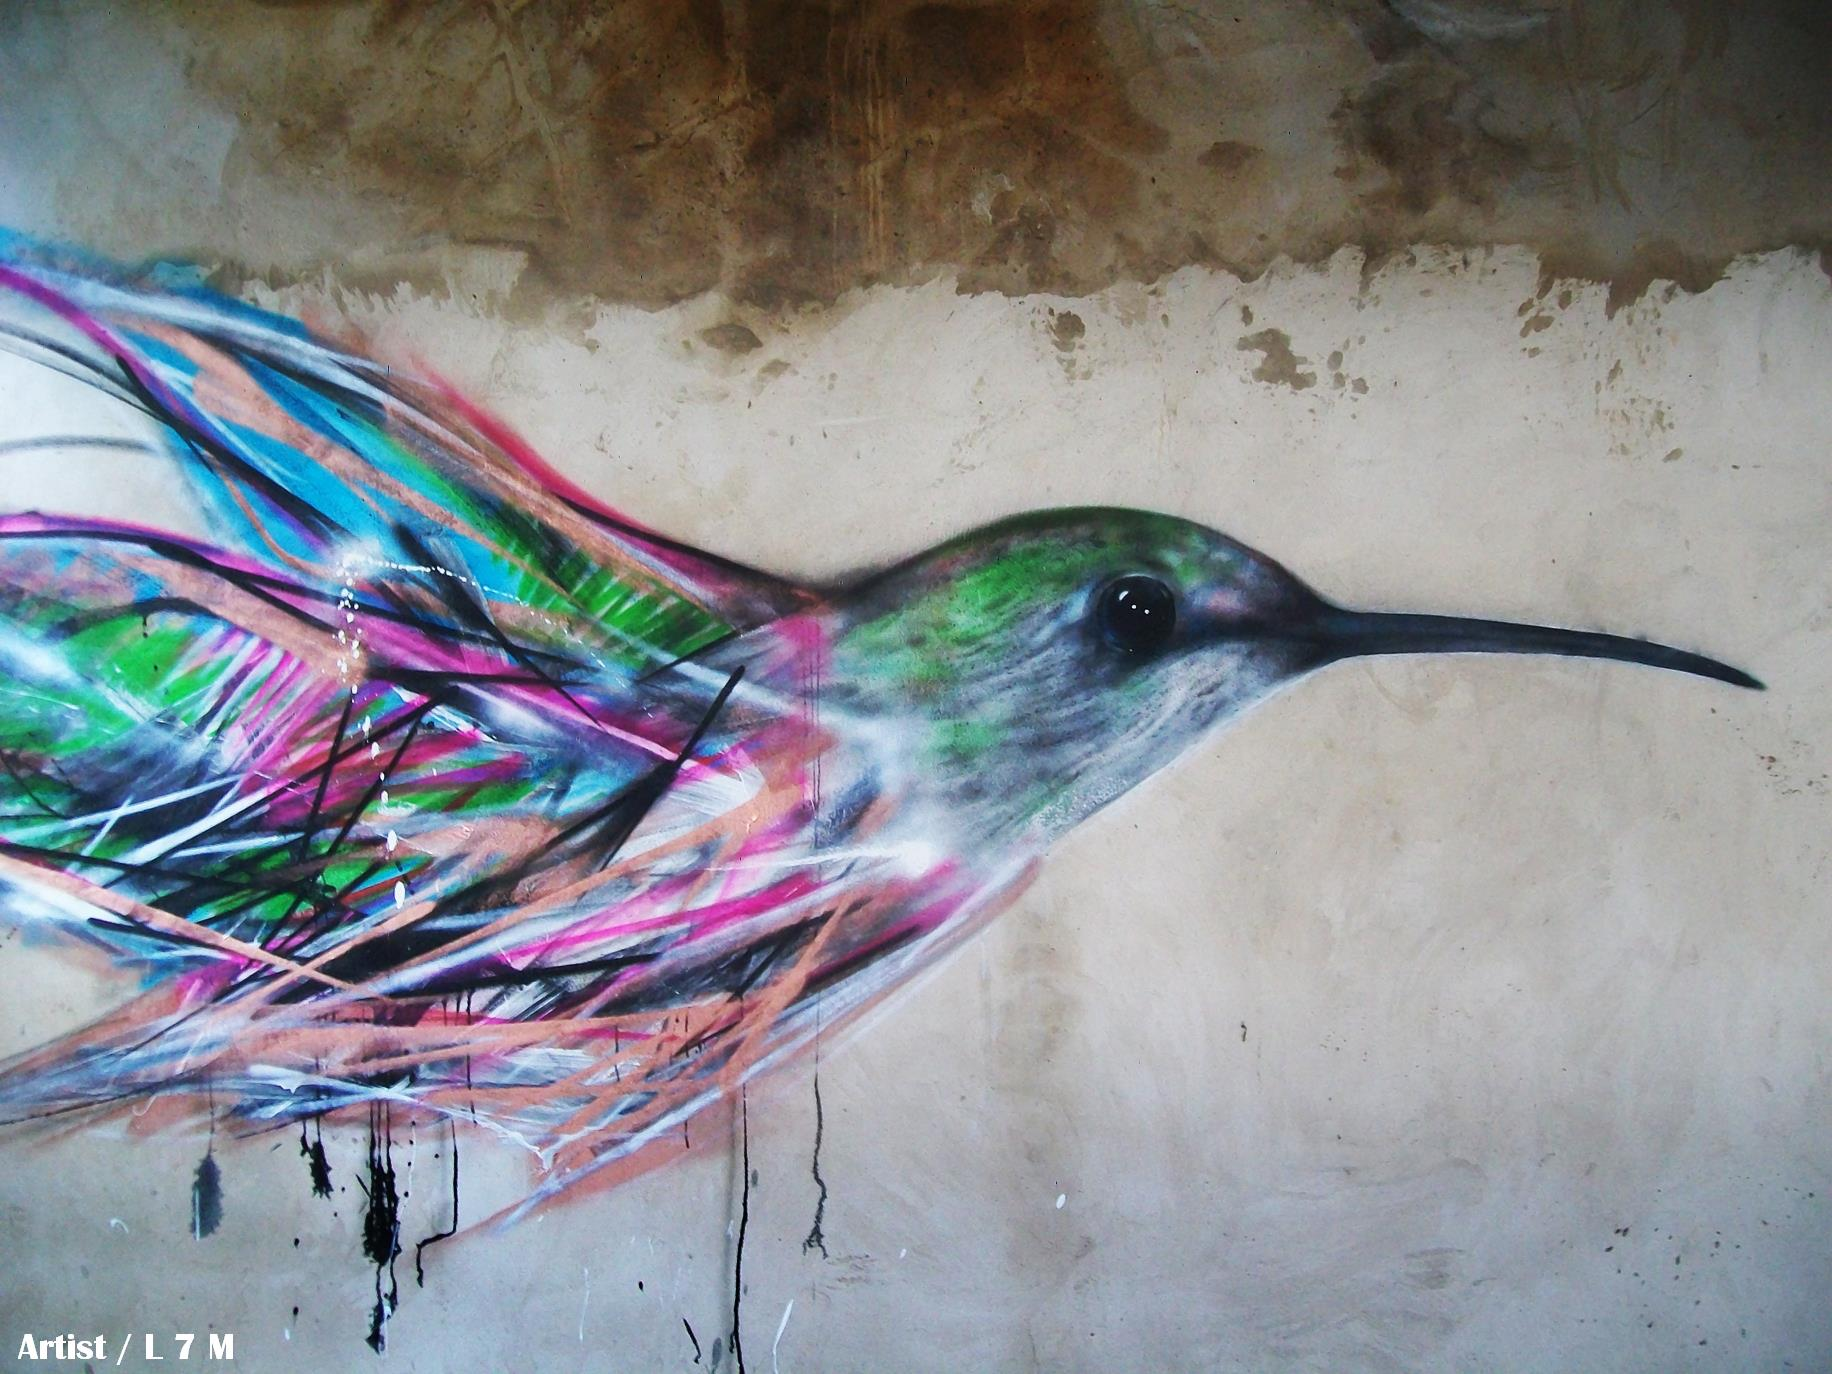 graffiti birds by brazilian artist l7m 7 Graffiti Birds by Brazilian Artist L7M